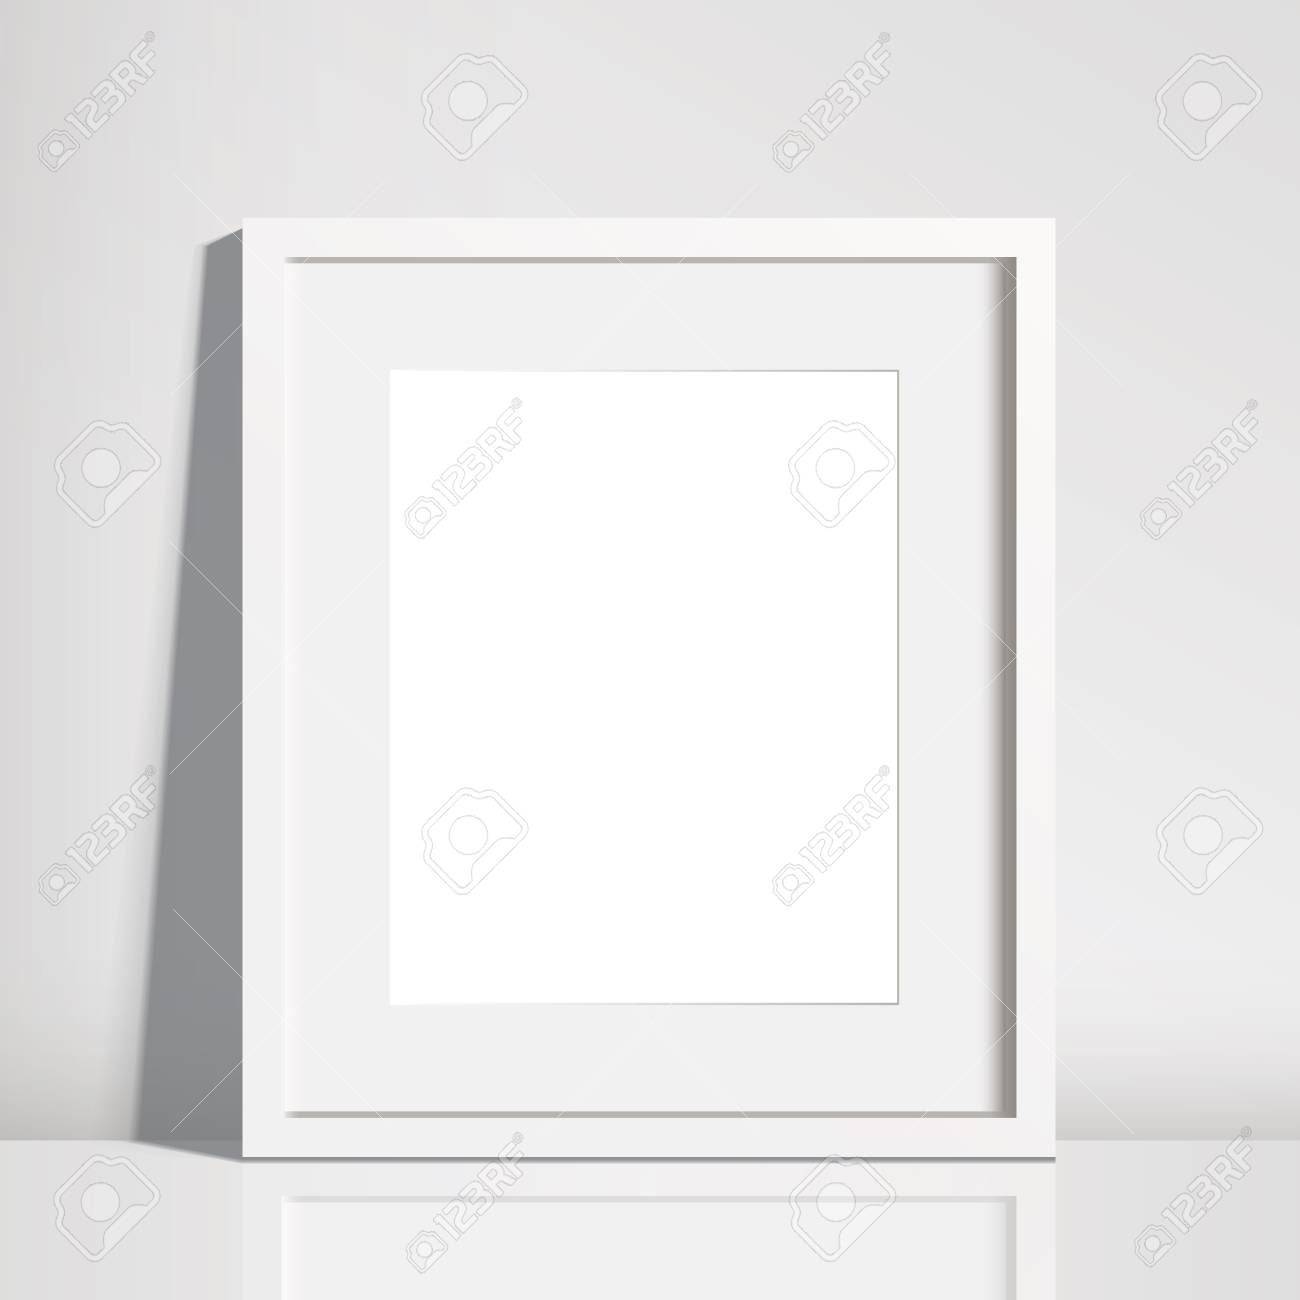 Realistic Empty White Picture Frame Mockup - 8x10 Inch Picture ...